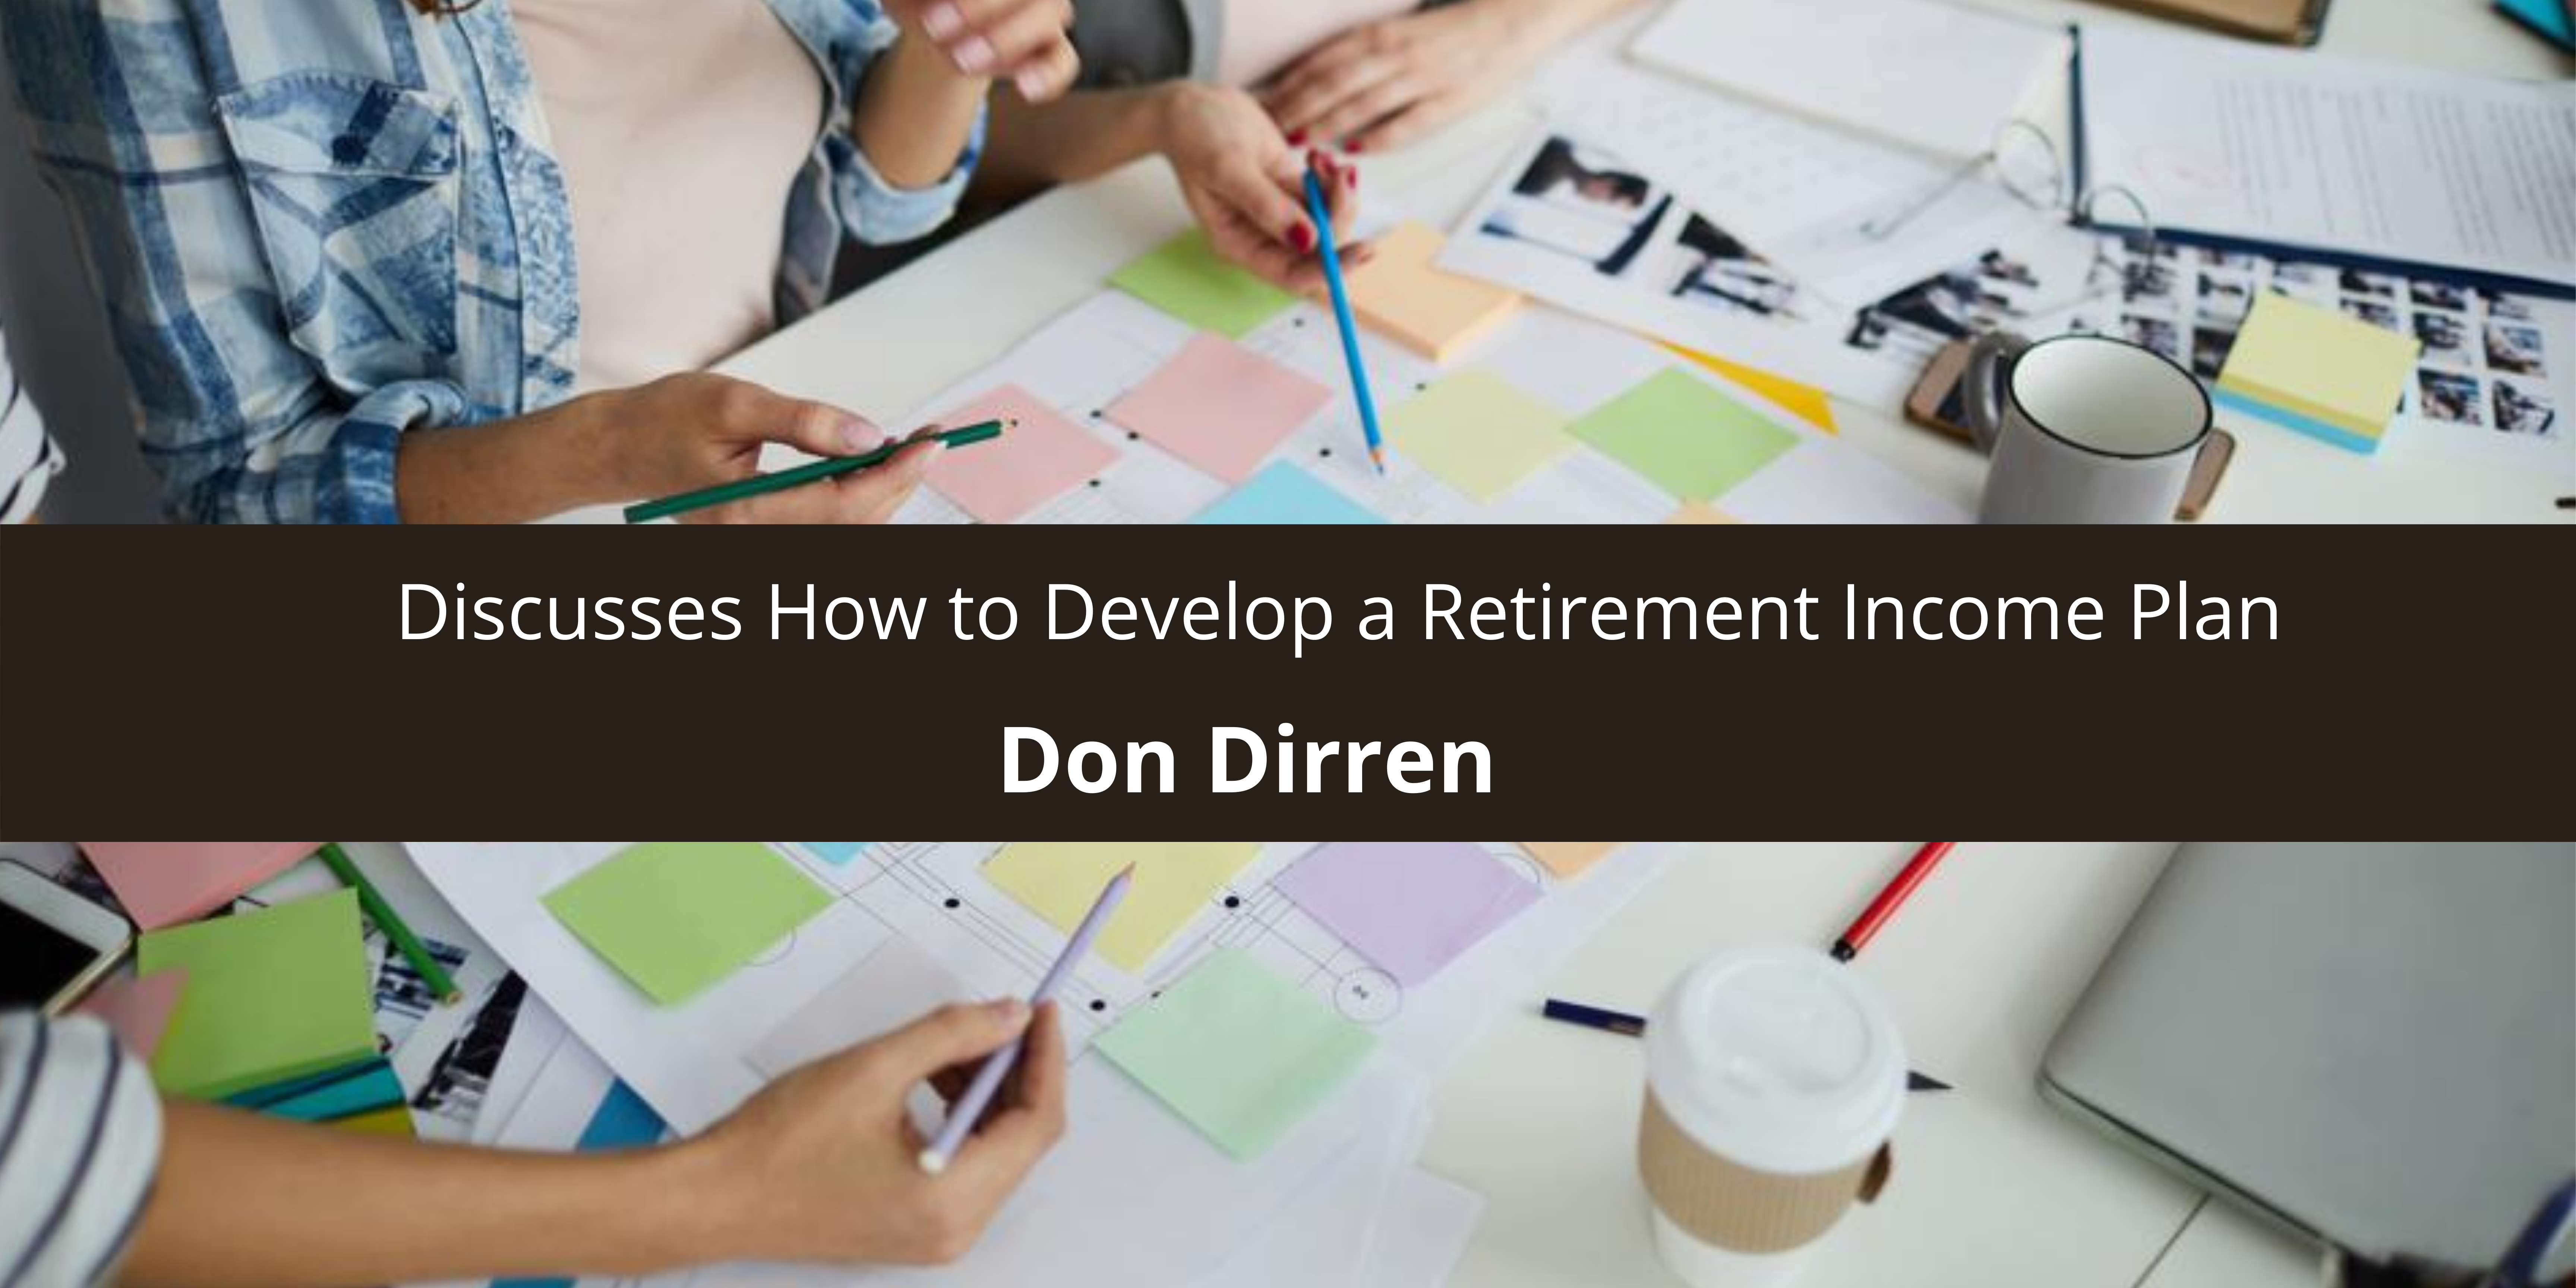 Don Dirren Discusses How to Develop a Retirement Income Plan